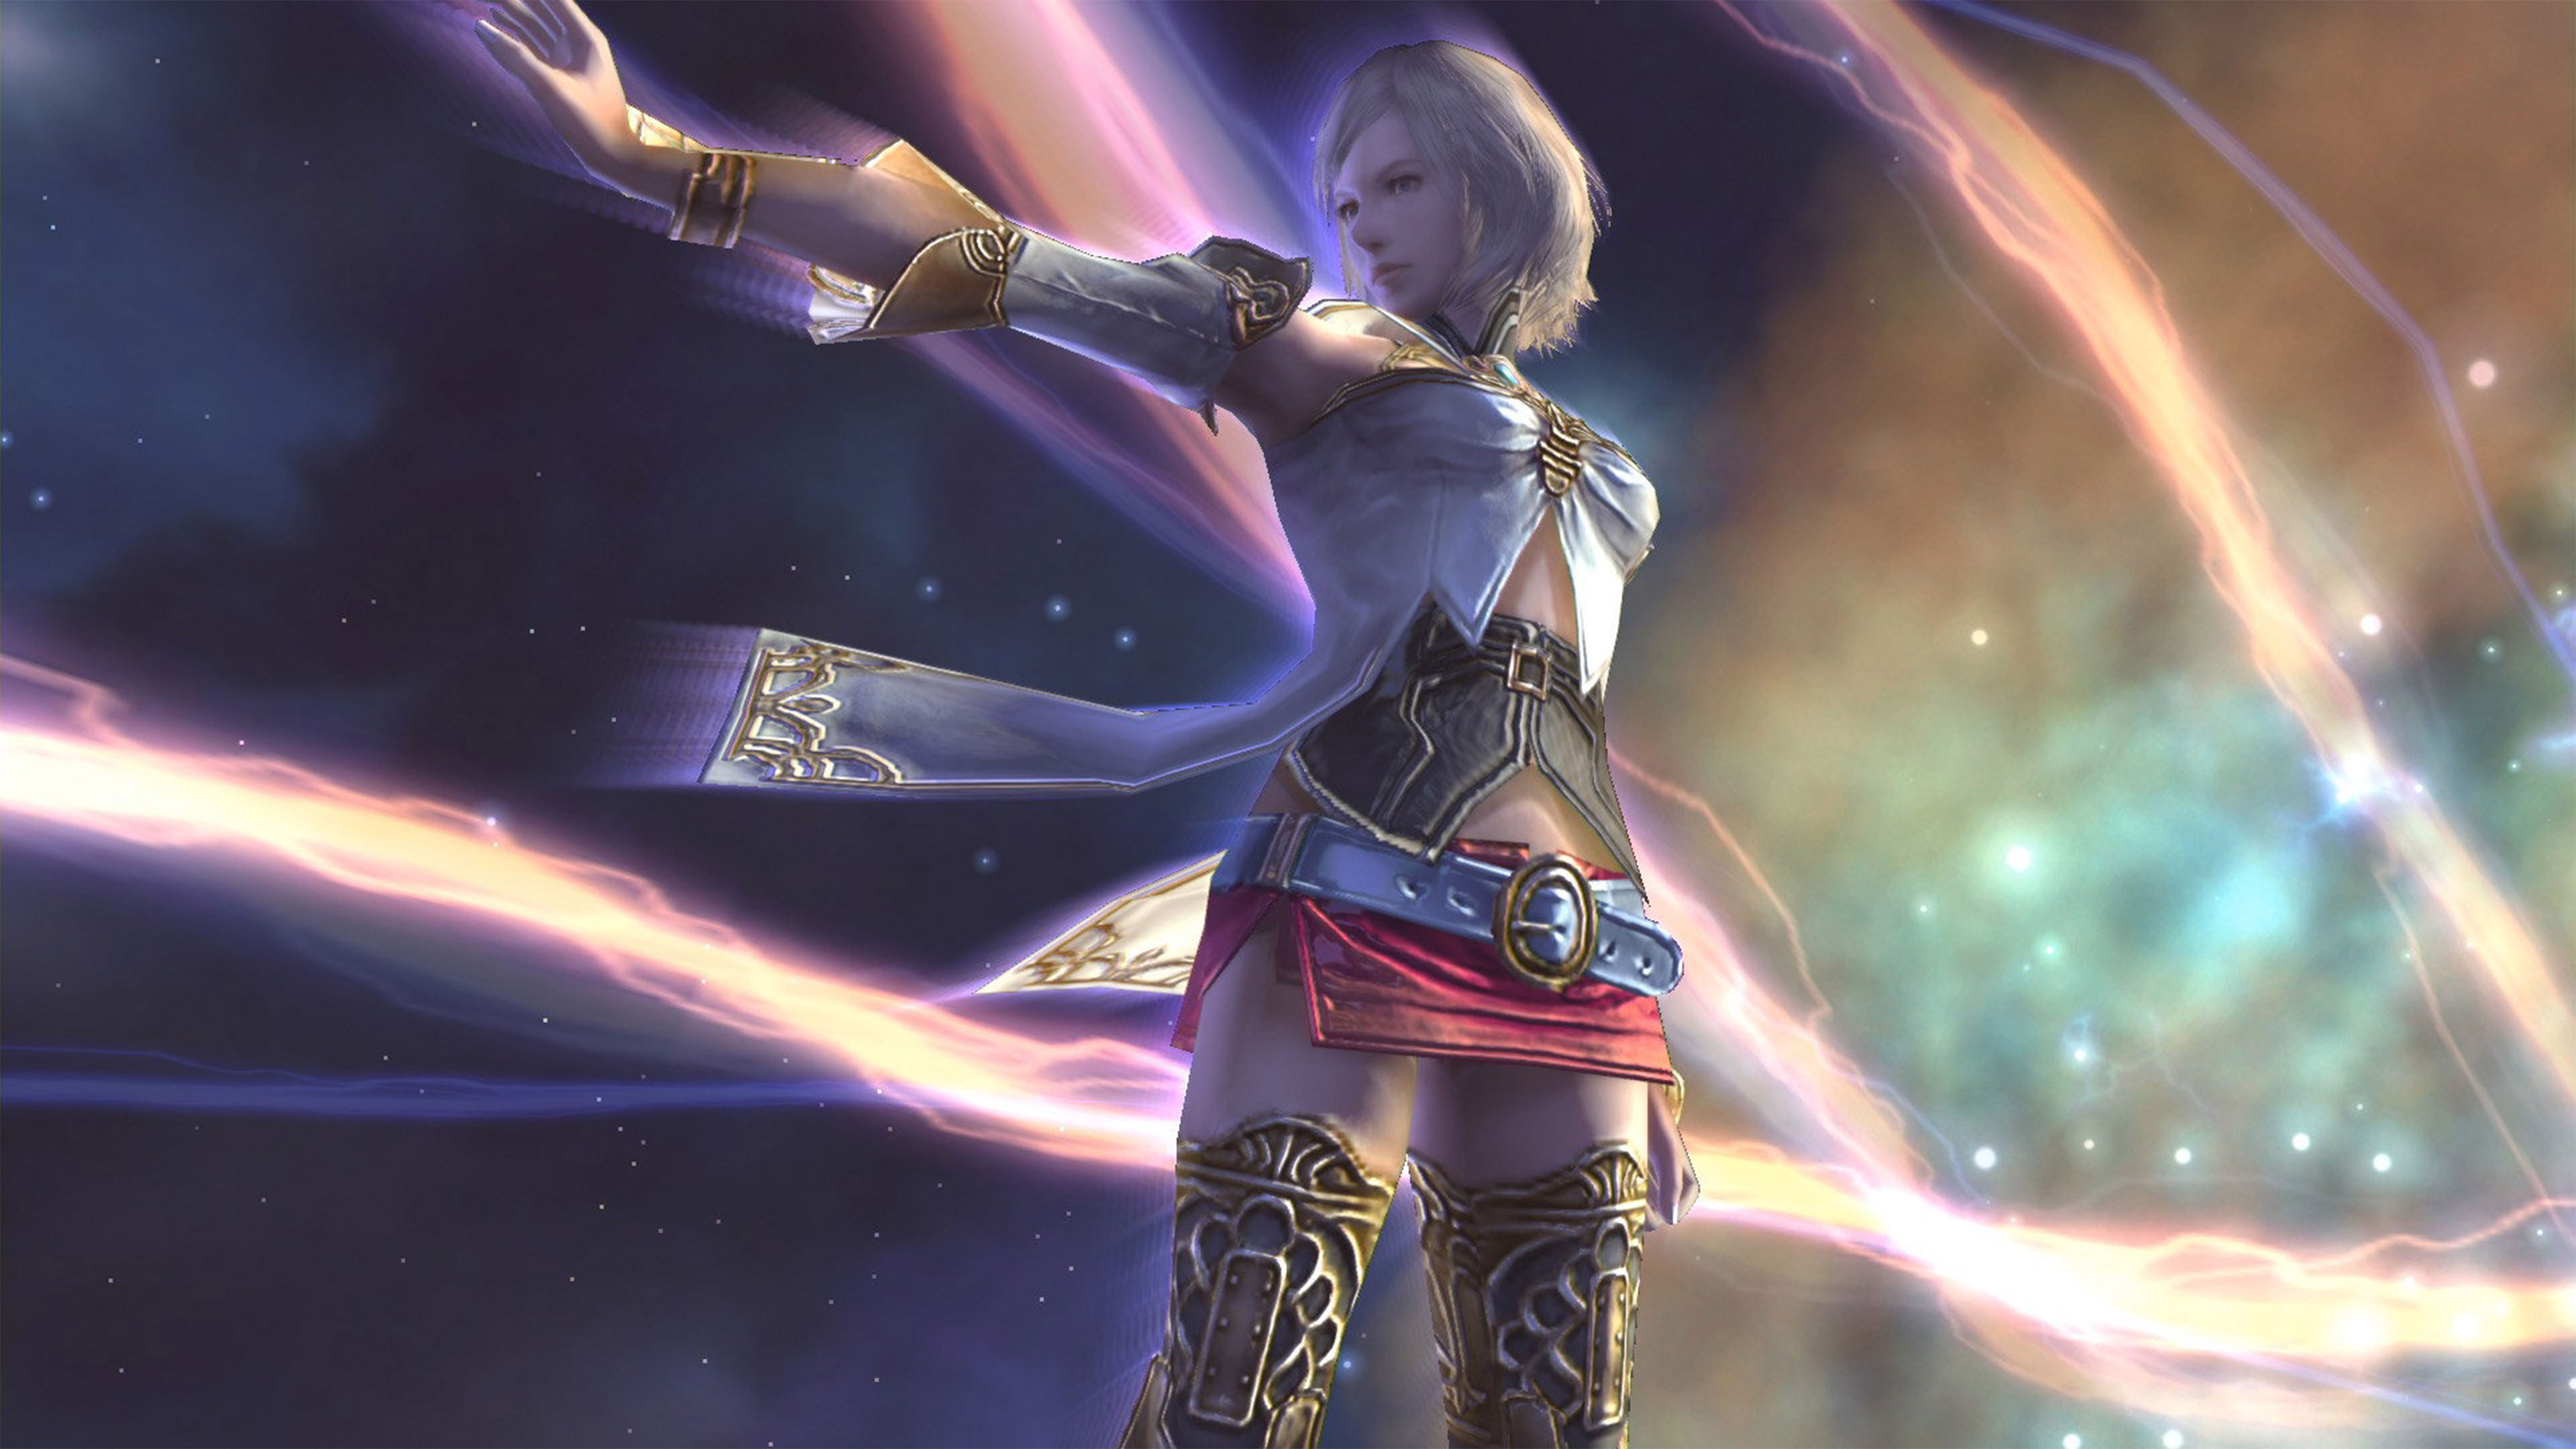 Final Fantasy Xii The Zodiac Age Wallpapers In Ultra Hd 4k